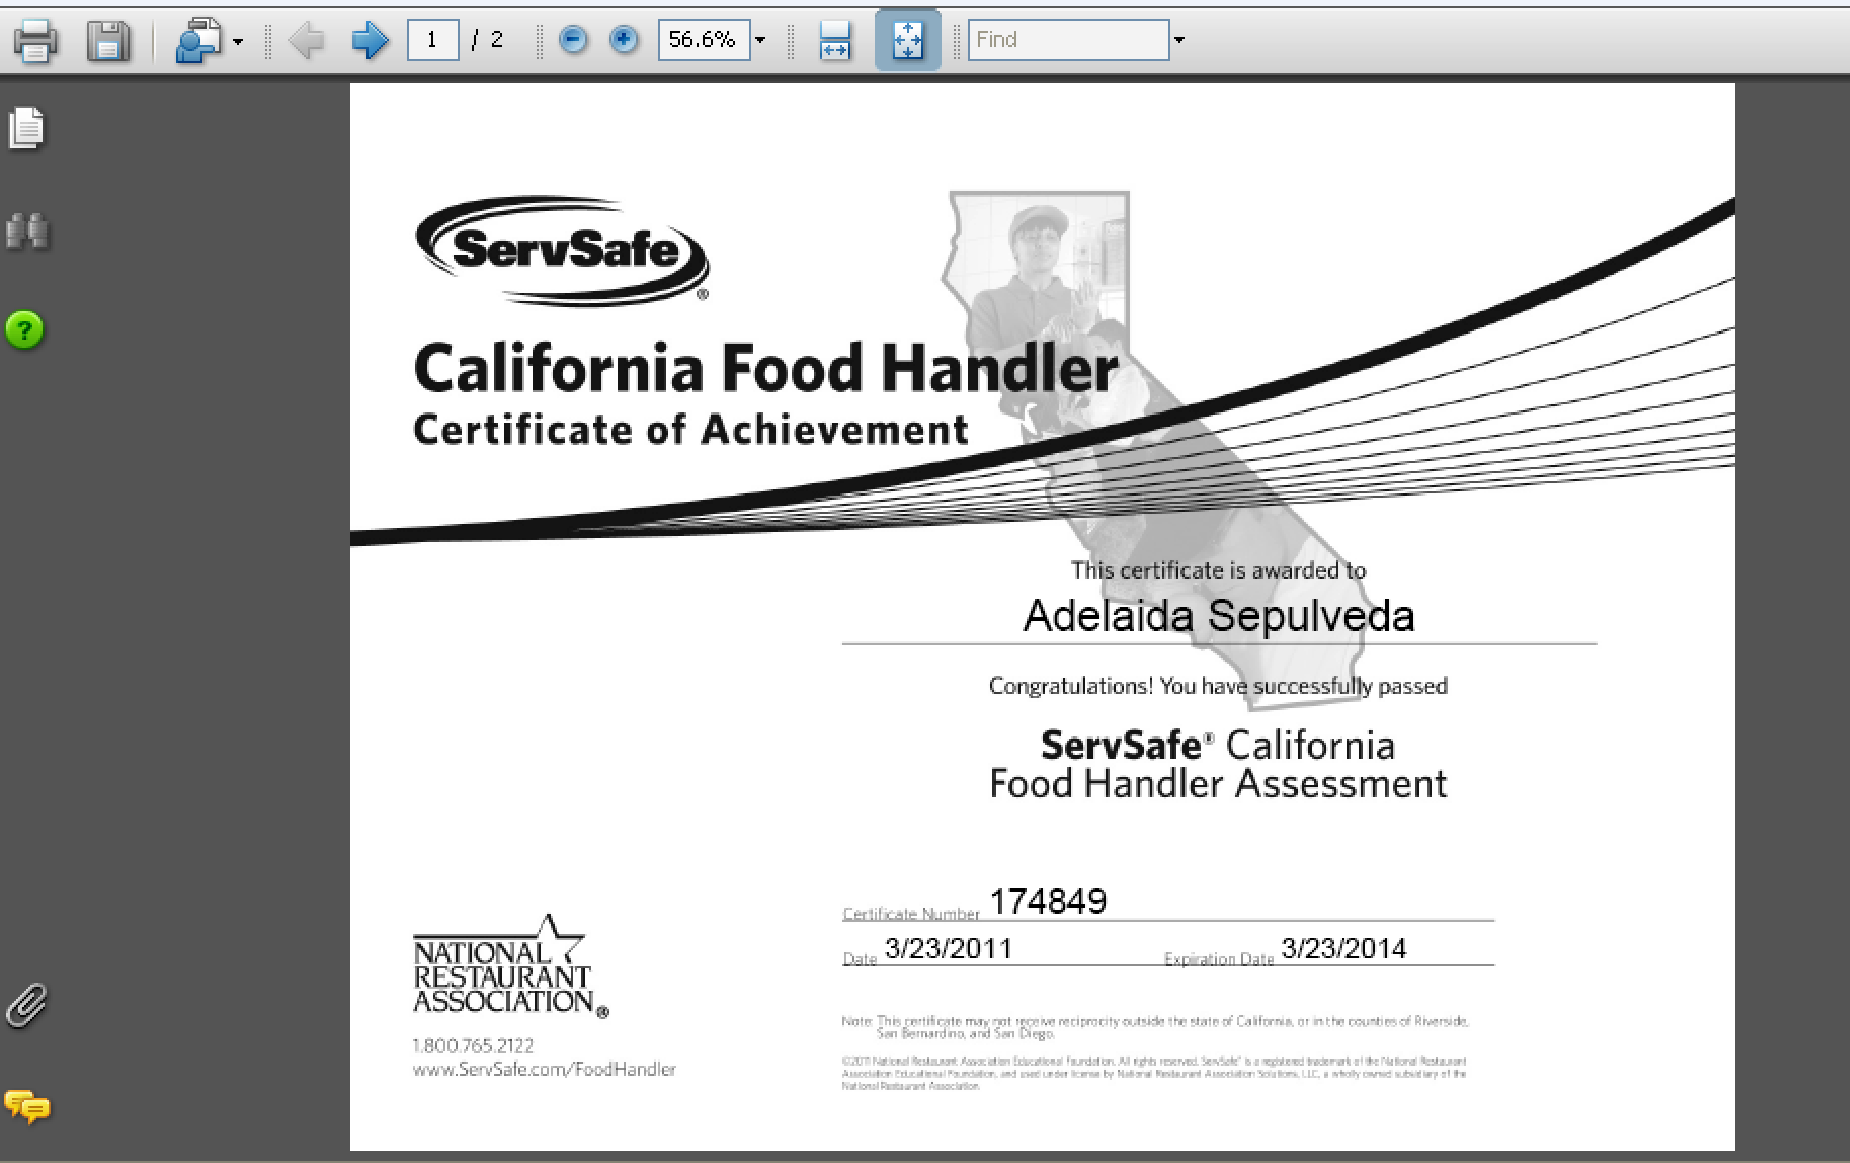 Servsafe California Food Handler View Scores And Print Certificate